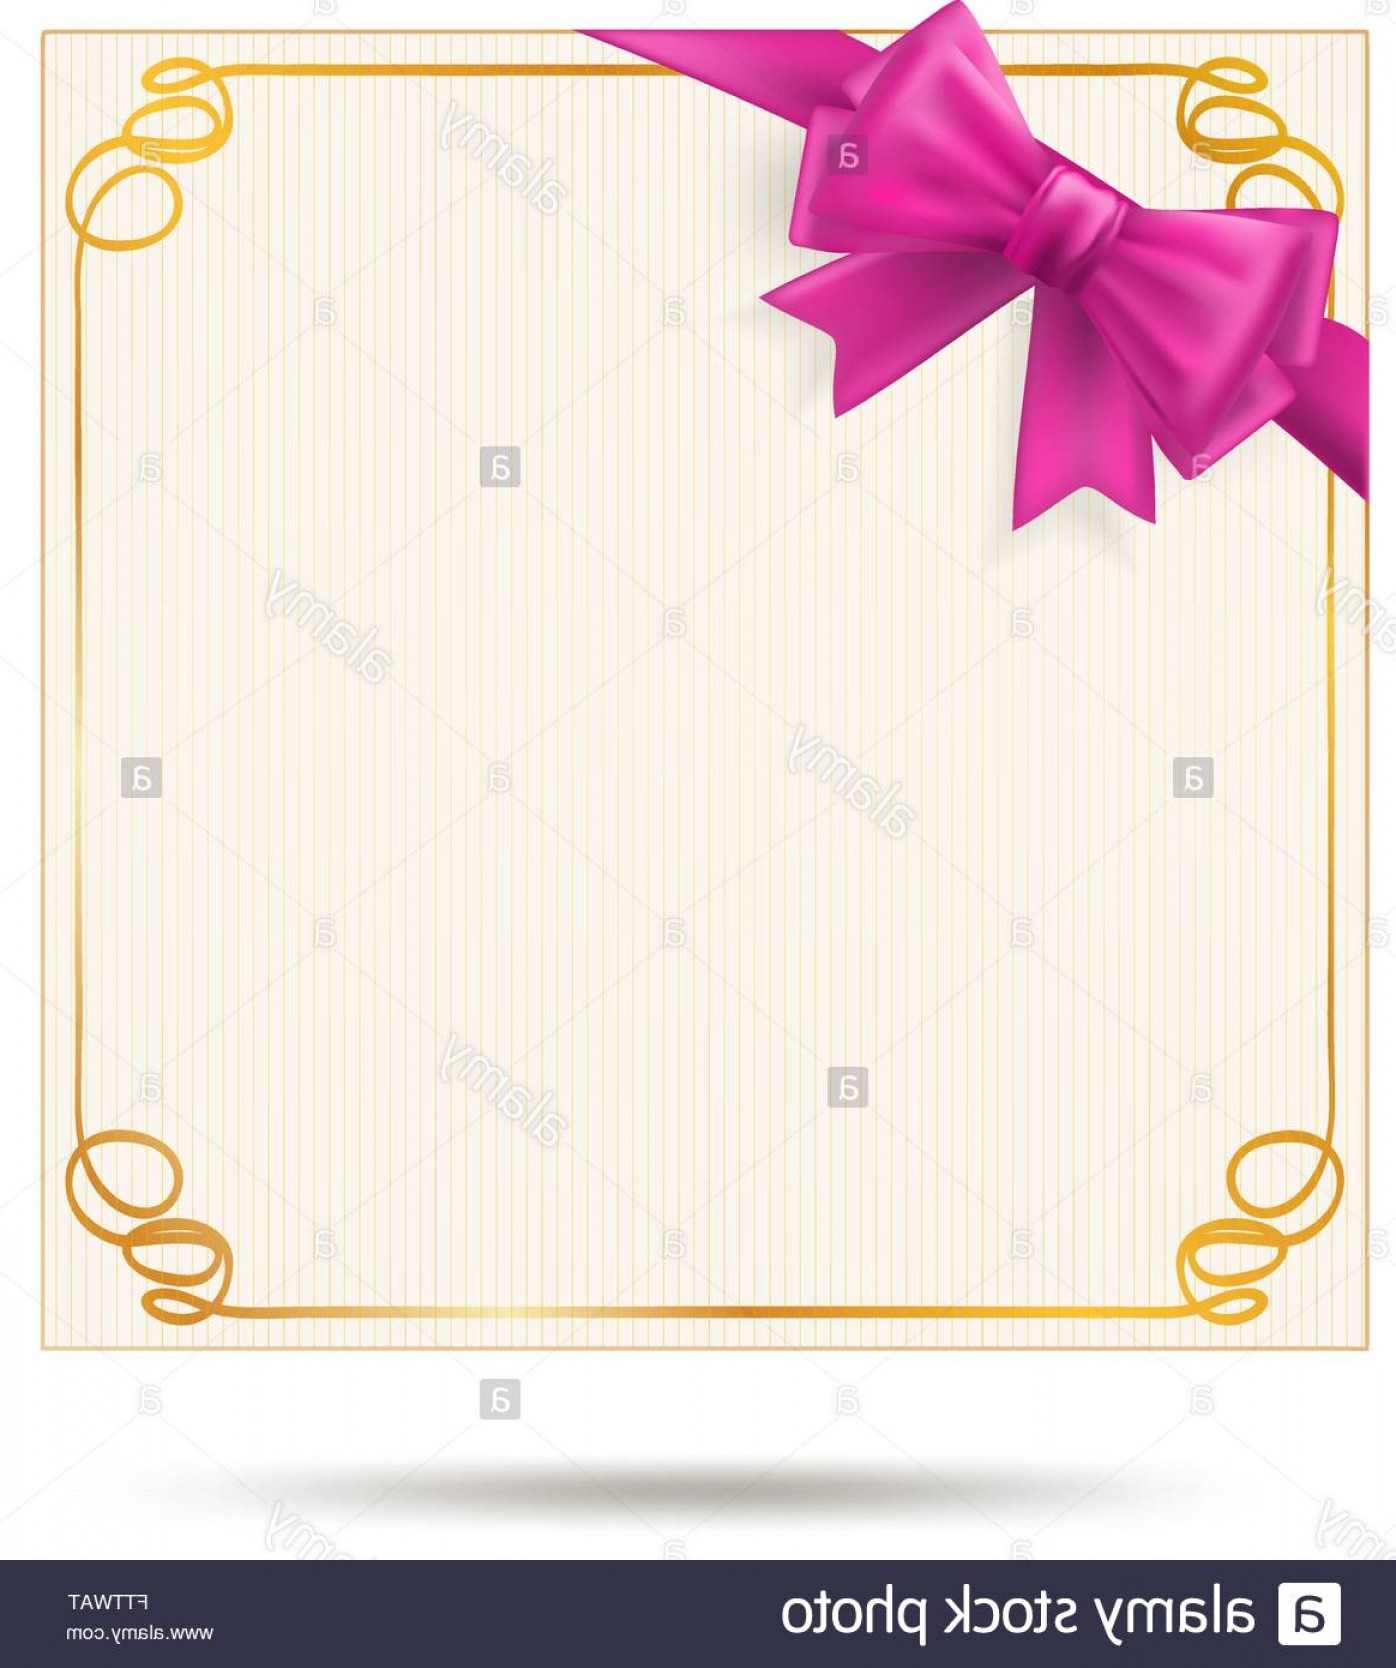 Vector Frame Gift: Stock Photo Gift Card With Golden Swirl Frame And Pink Ribbon Pink Bow Decoration